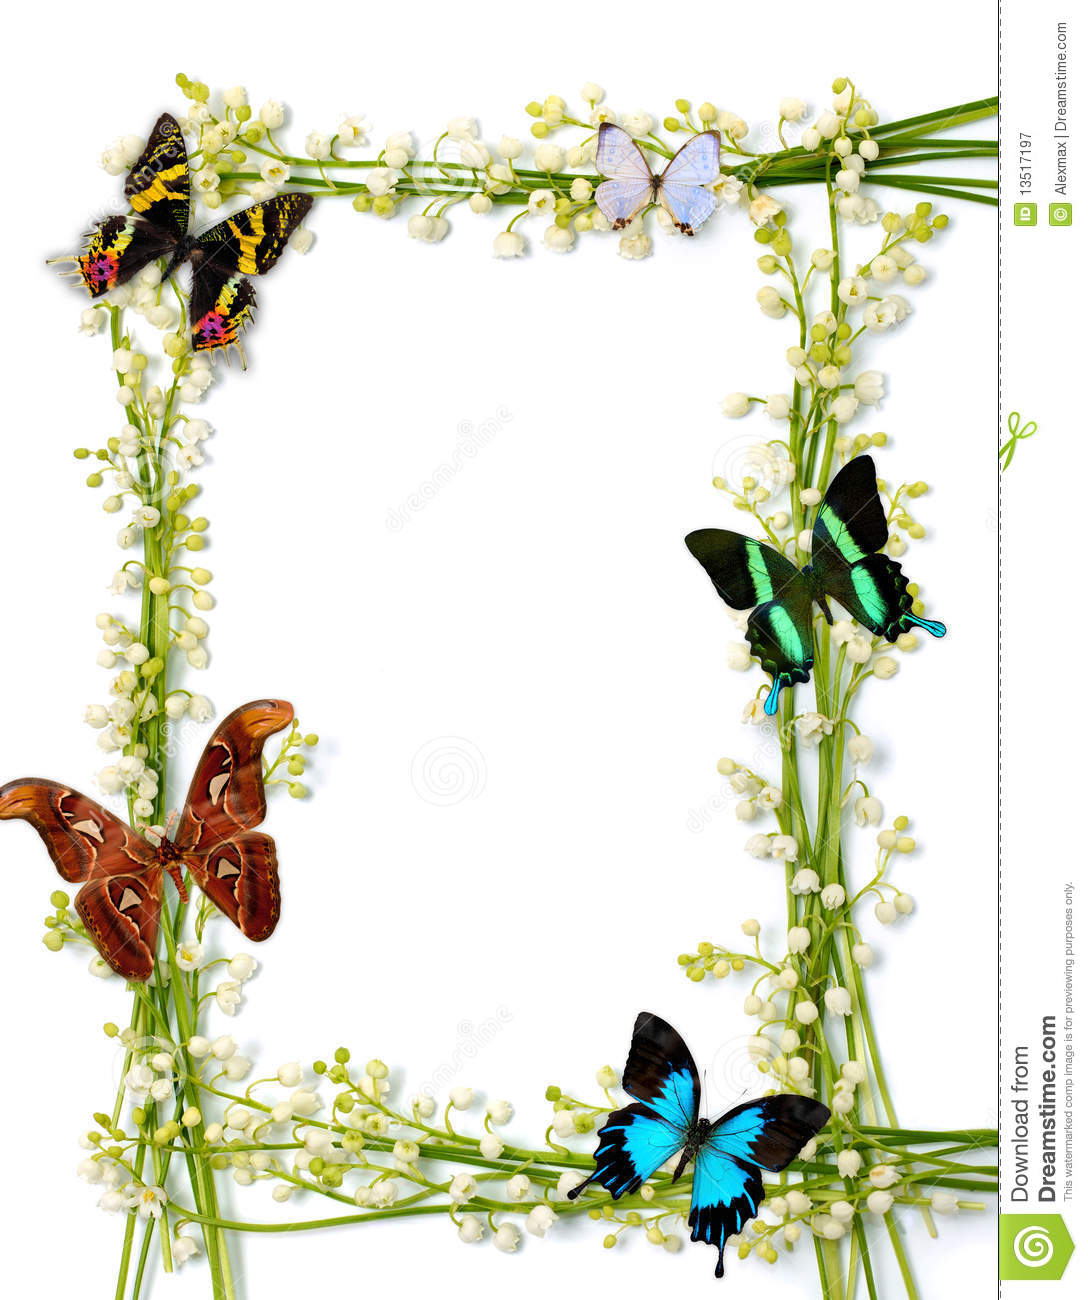 Colorful Summer Frame With Butterflies Stock Image - Image of love ...